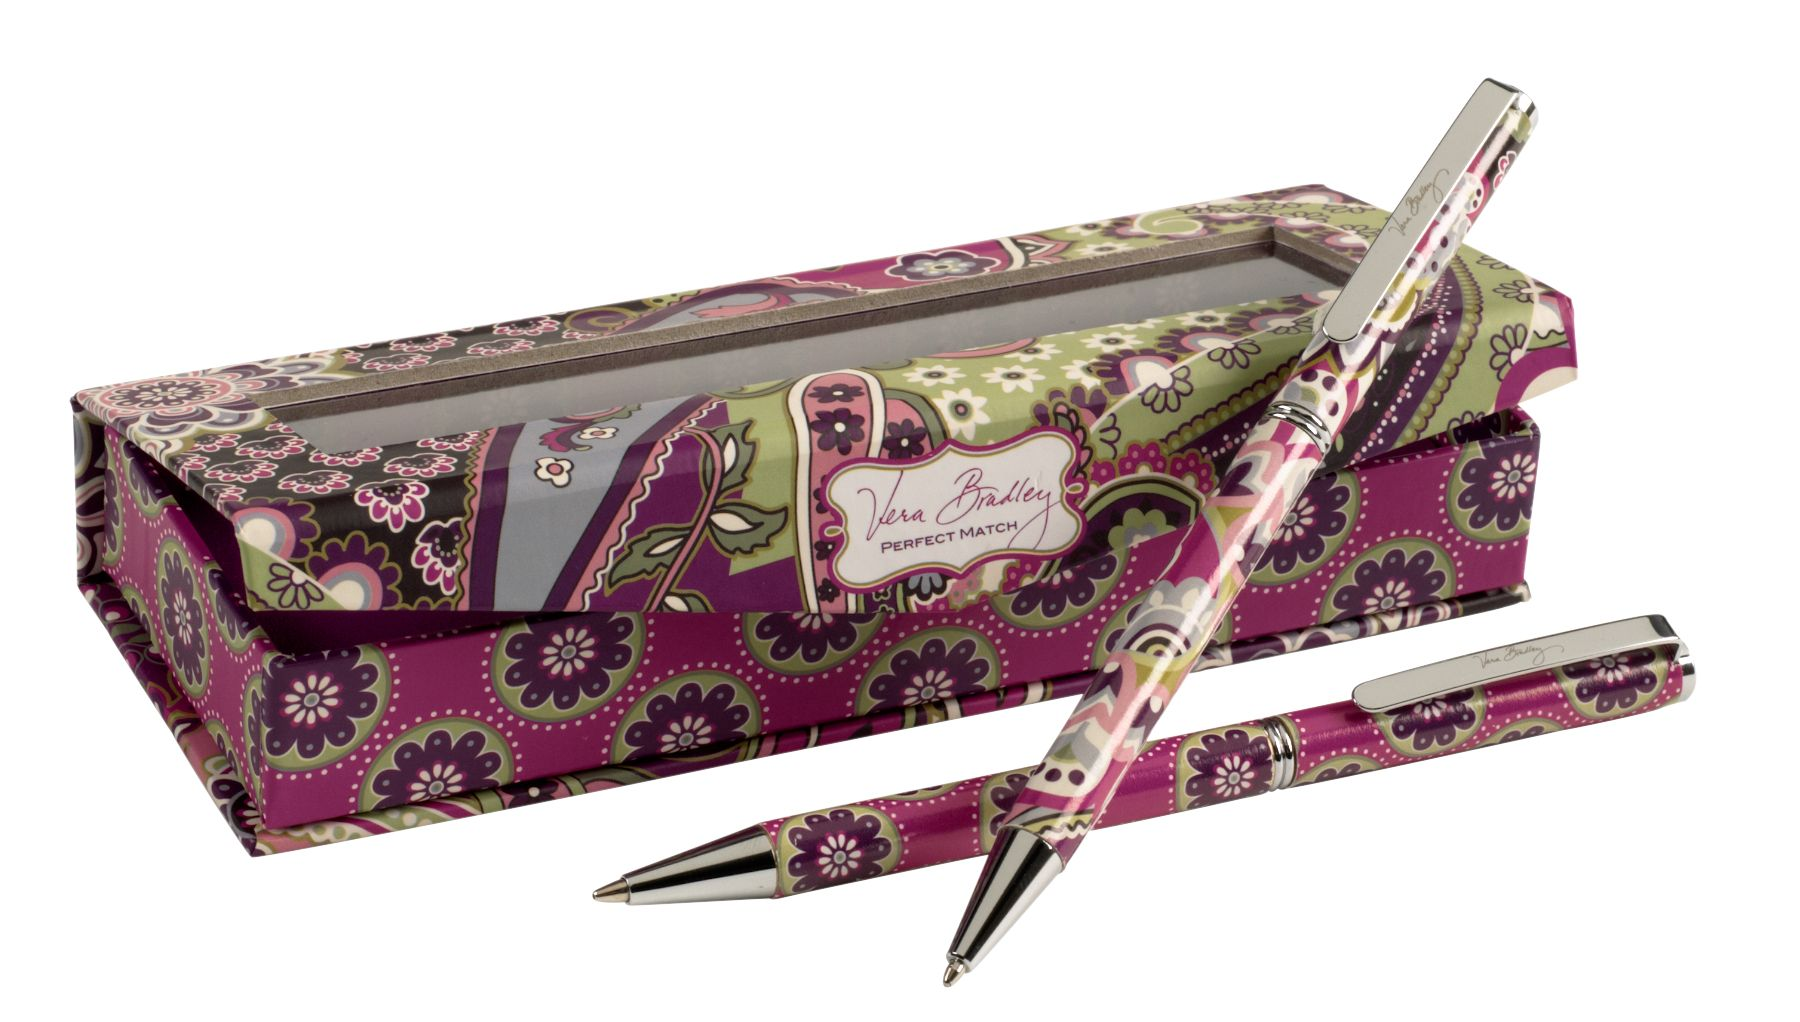 Vera Bradley Perfect Match Pen and Pencil Set in Very Berry Paisley